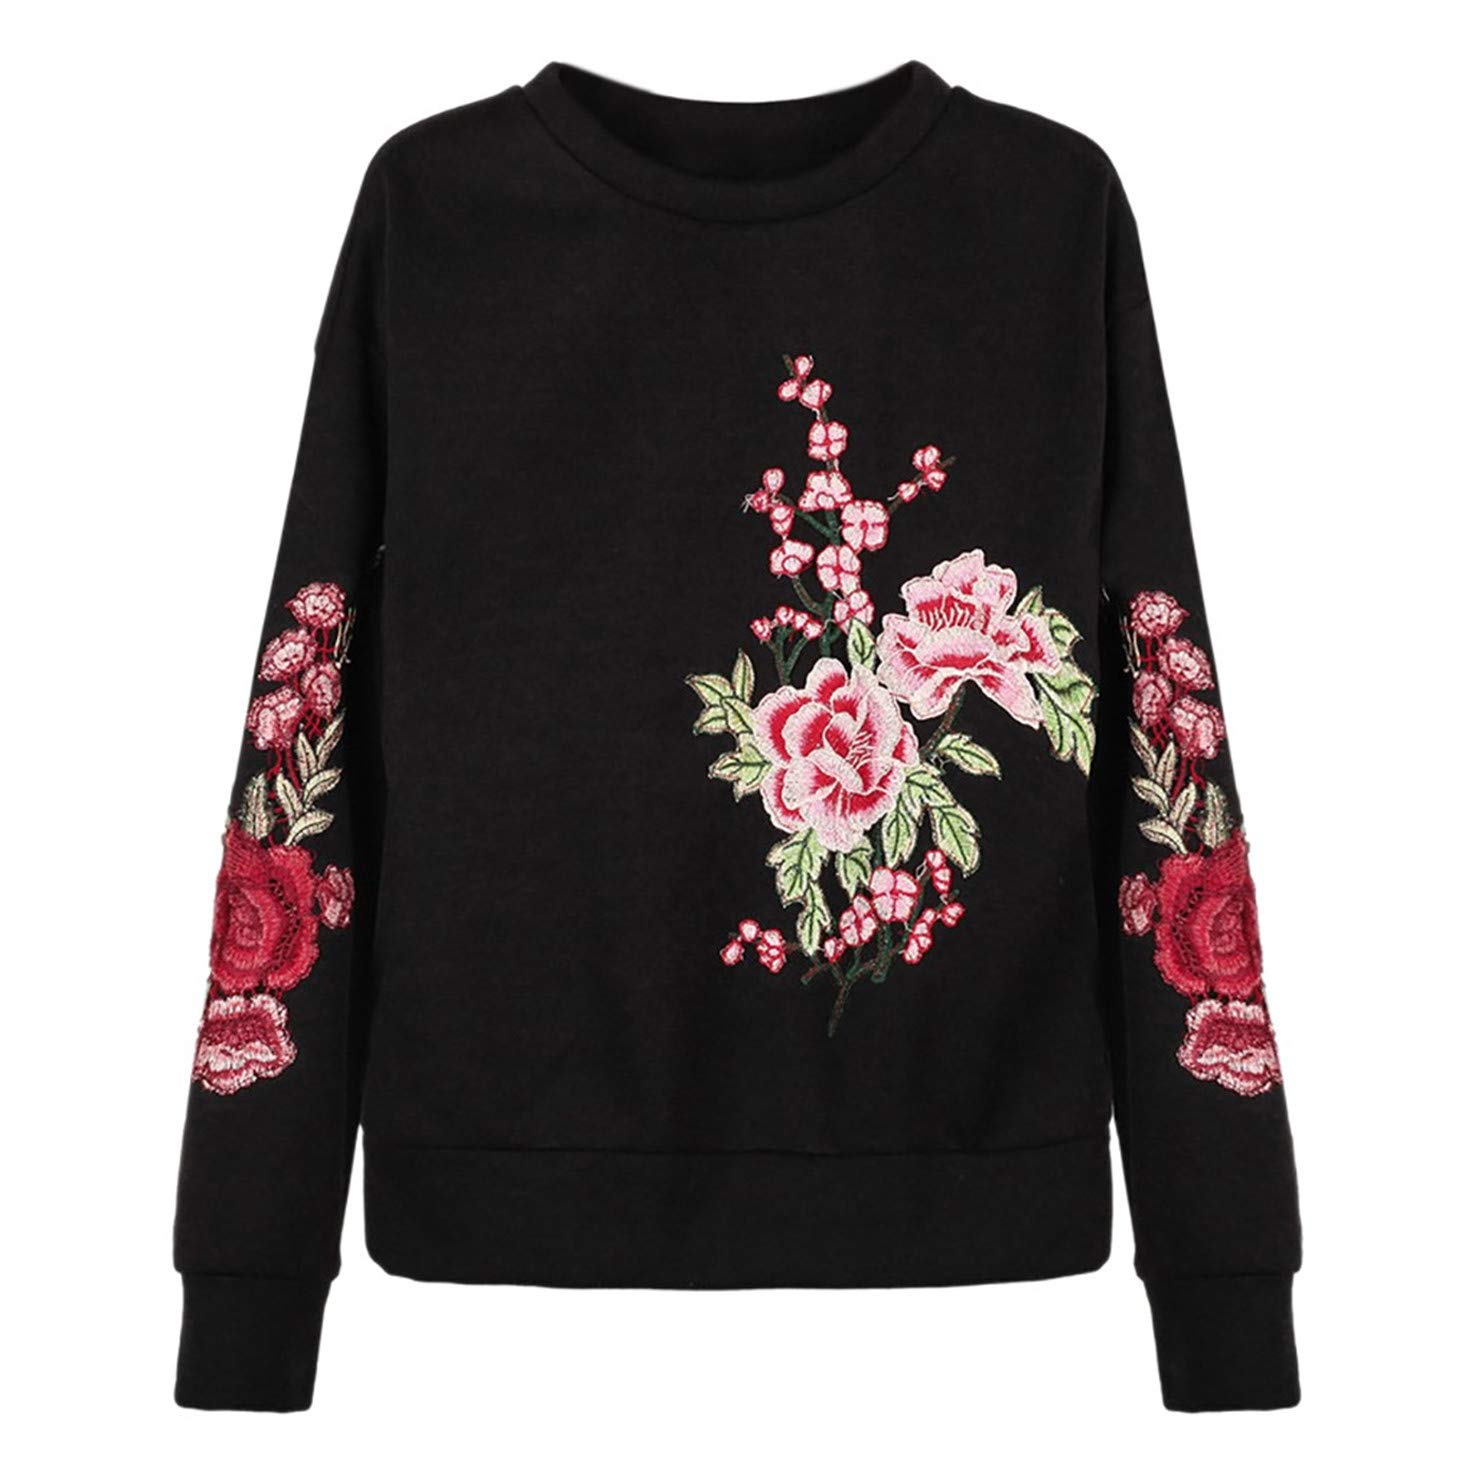 TIFENNY Fashion 2019 New Sweatshirt Women's Stripe Casual Long Sleeve Round Neck Embroidery Flower Pullover Hooded